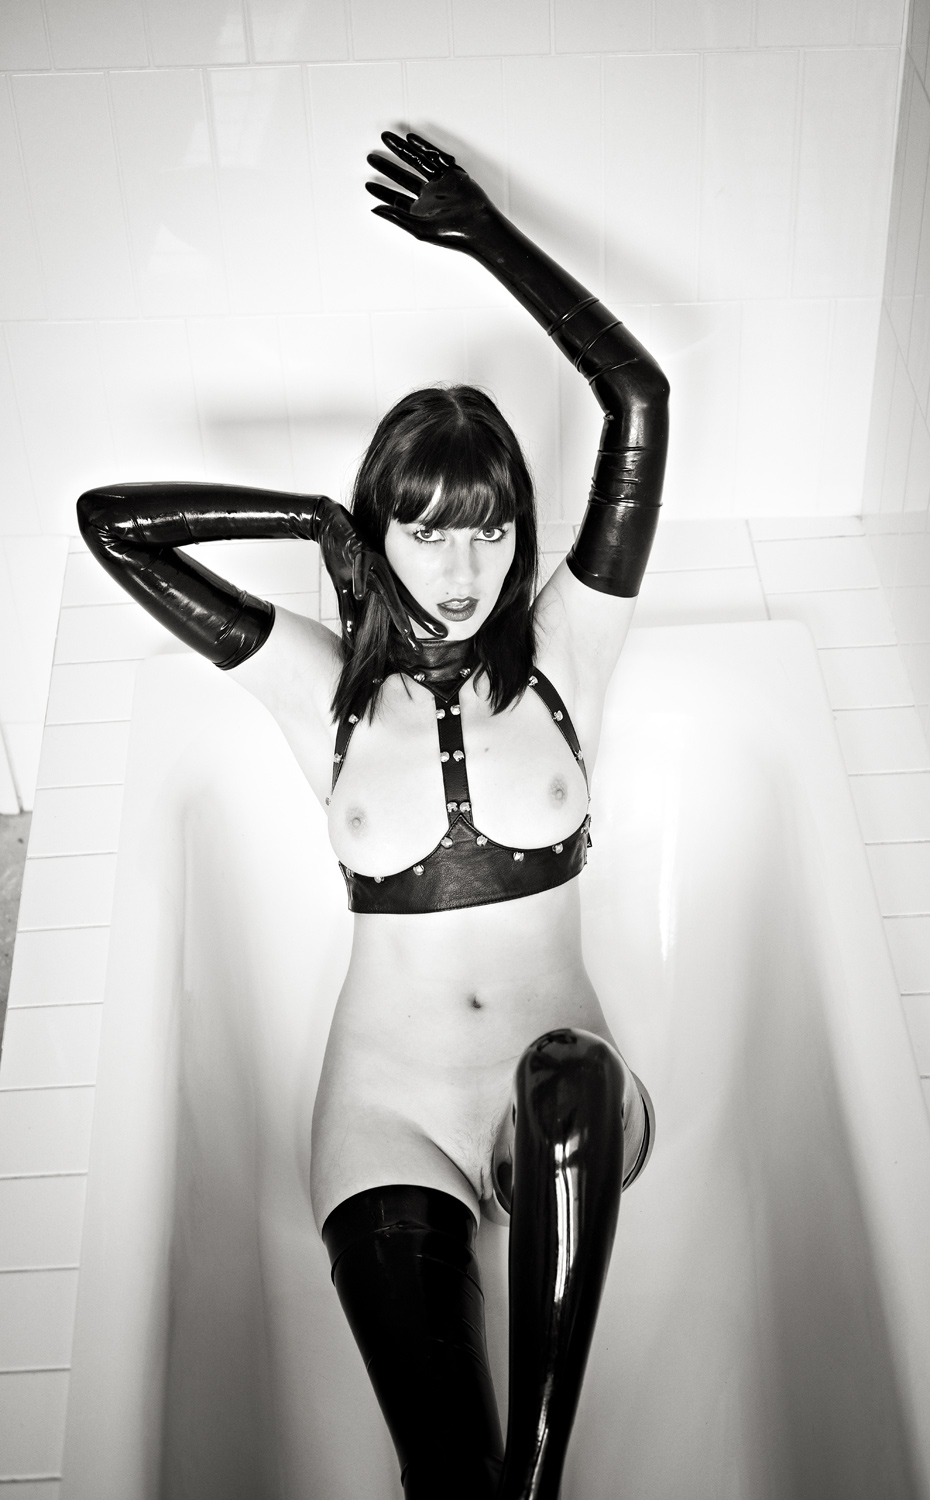 Ivy and her latex bath wear